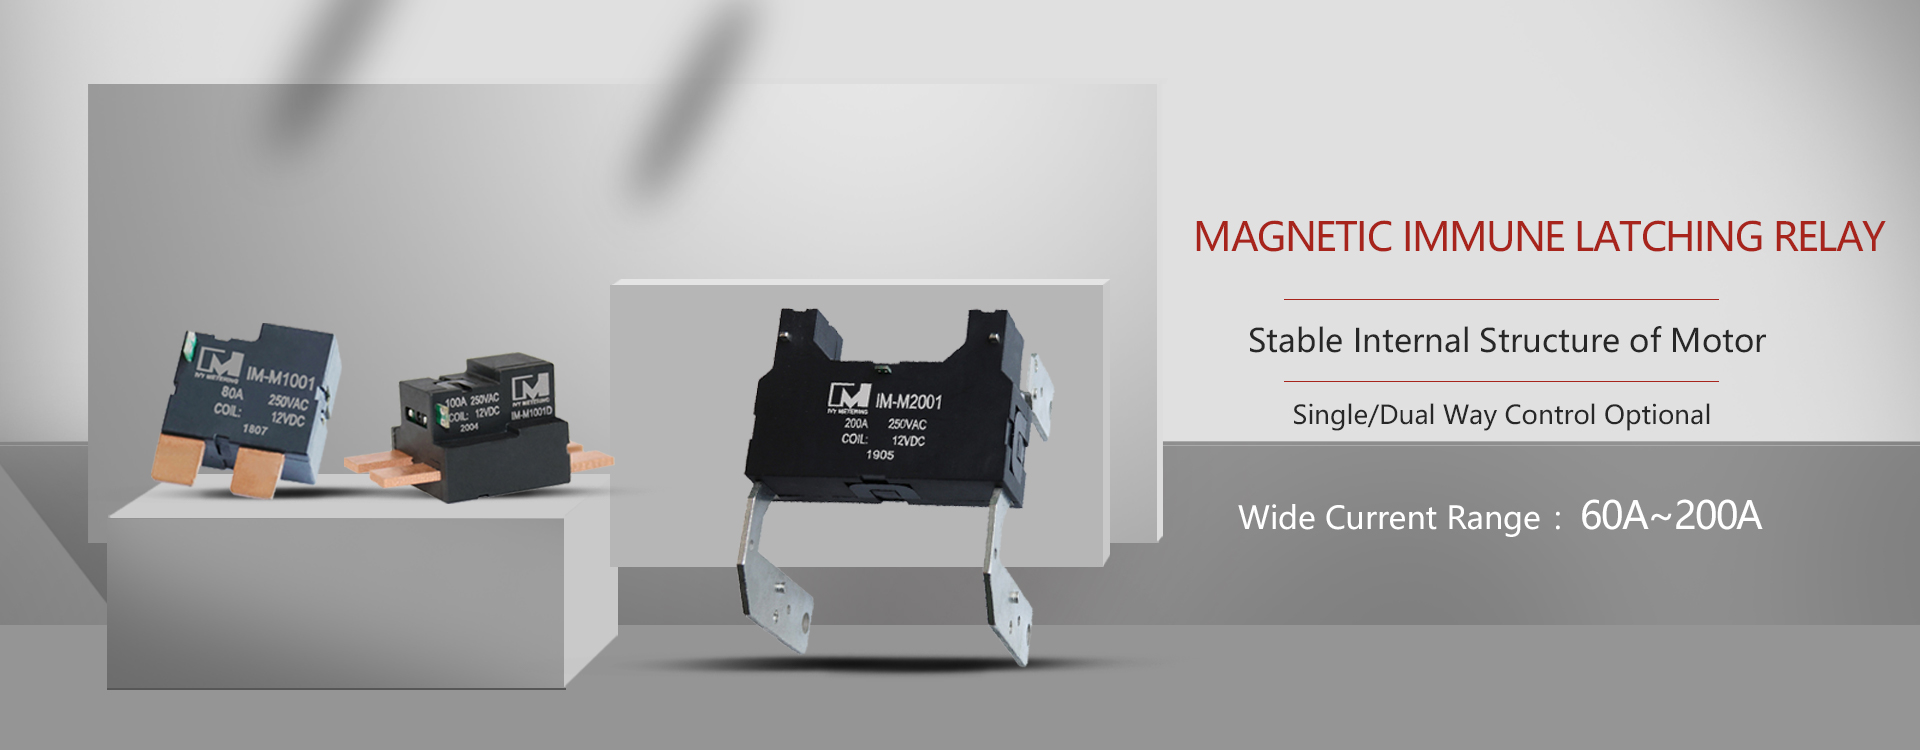 Magnetic Immune latching Relay